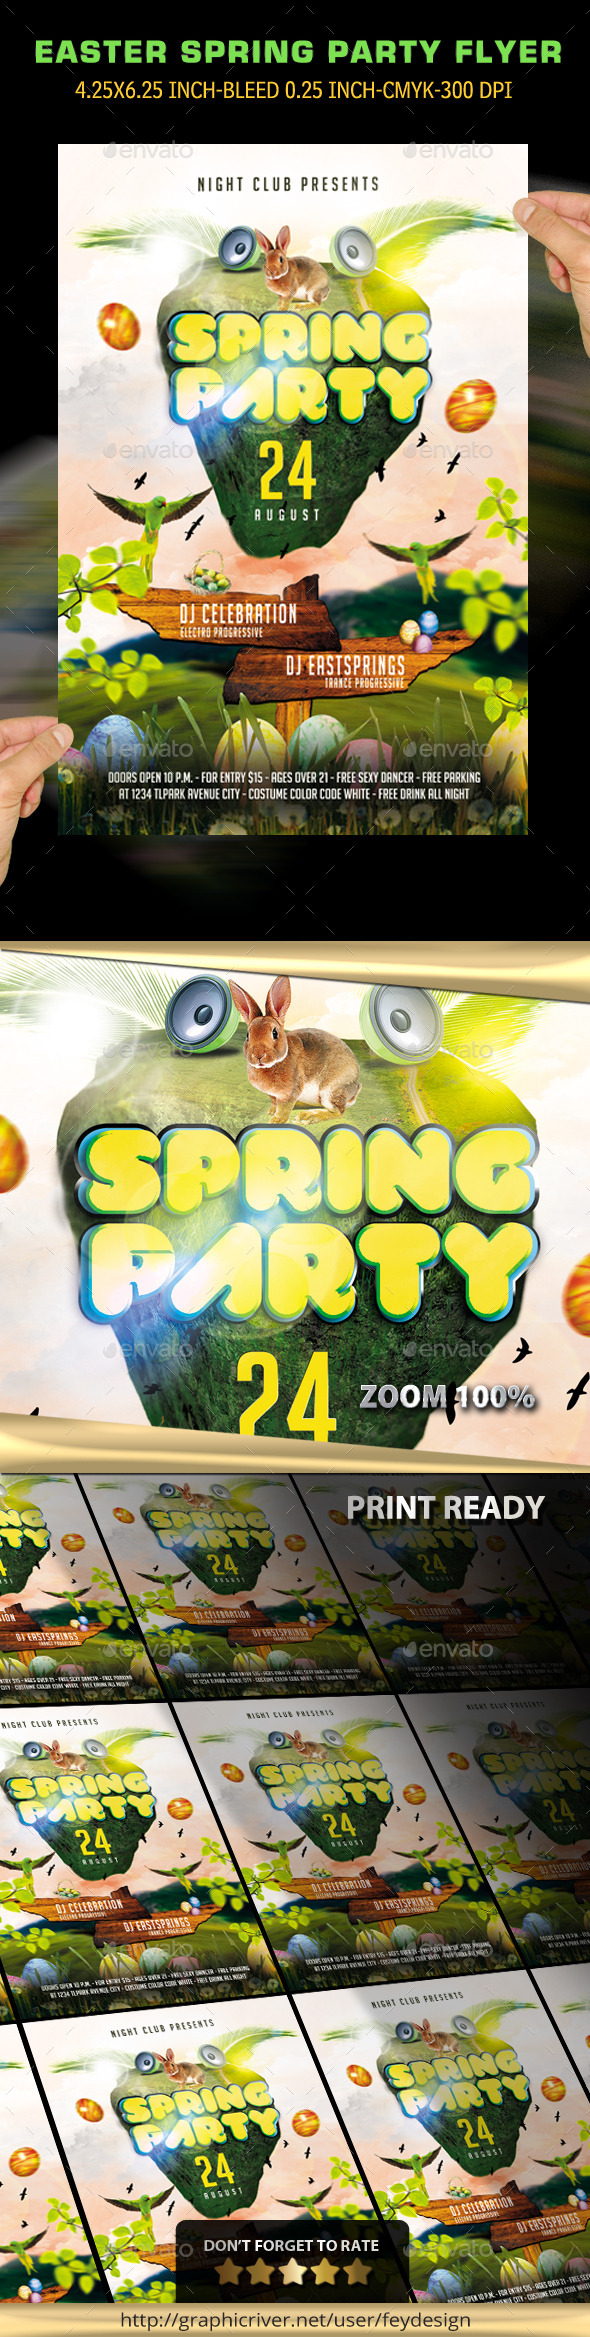 GraphicRiver Easter Spring Party Flyer 10648915